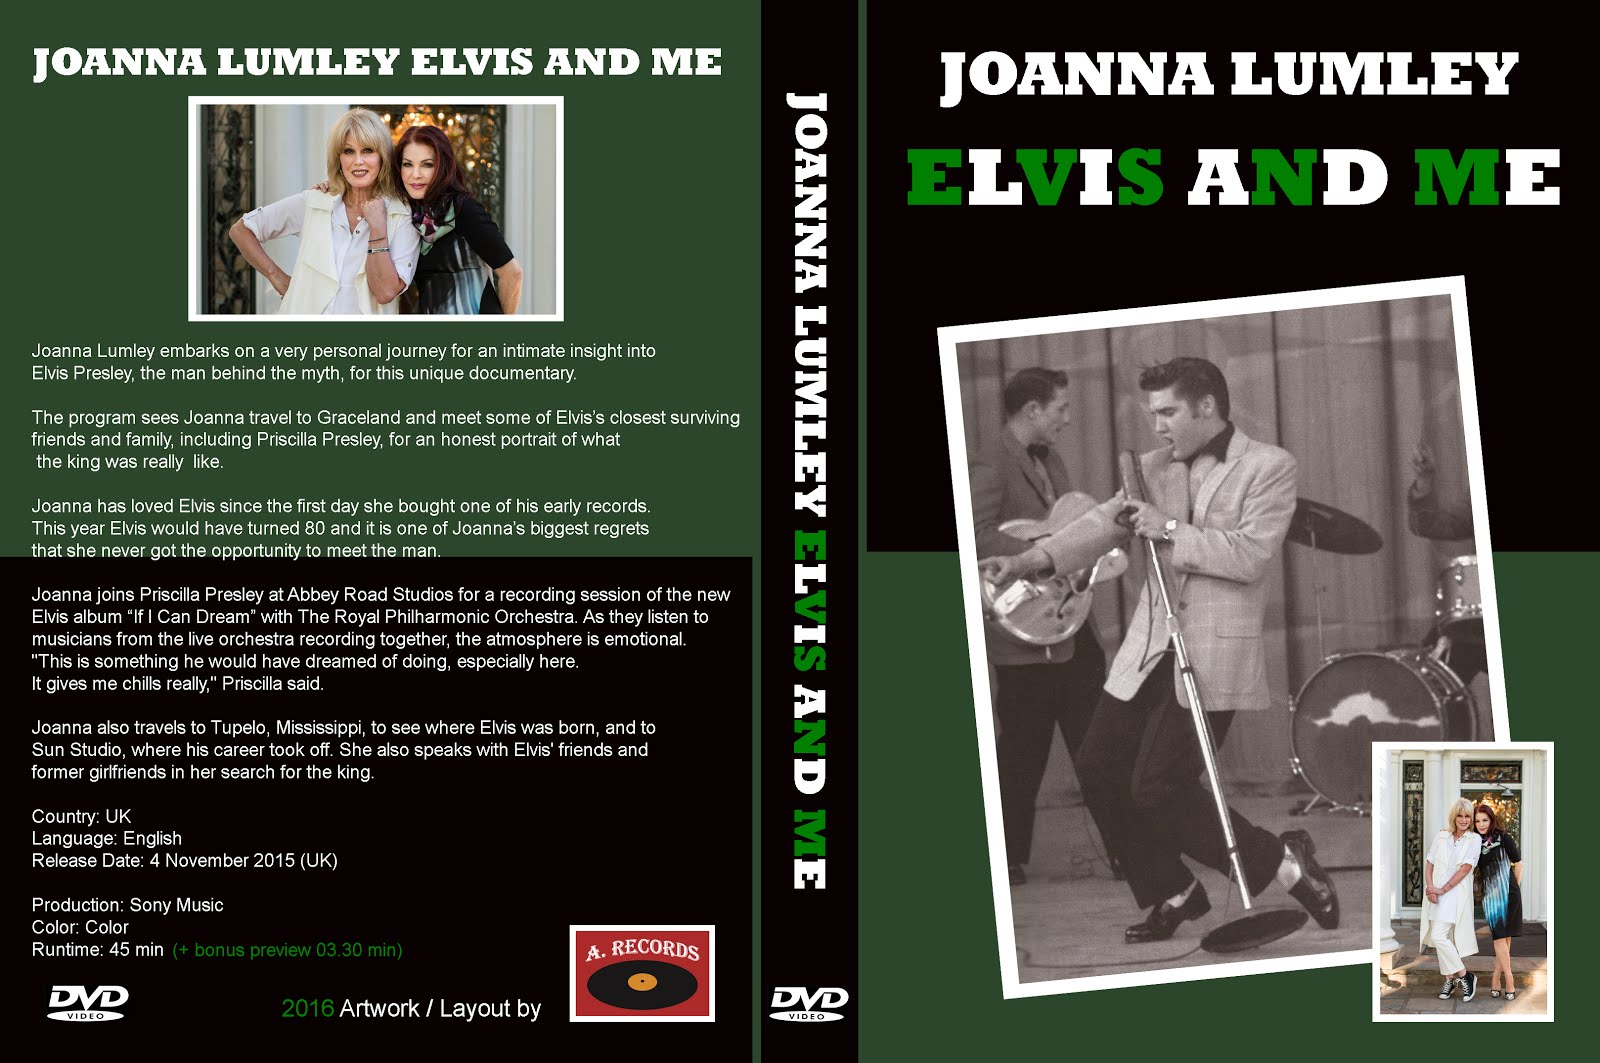 Joanna Lumley - Elvis And Me (DVD) (January 2016)